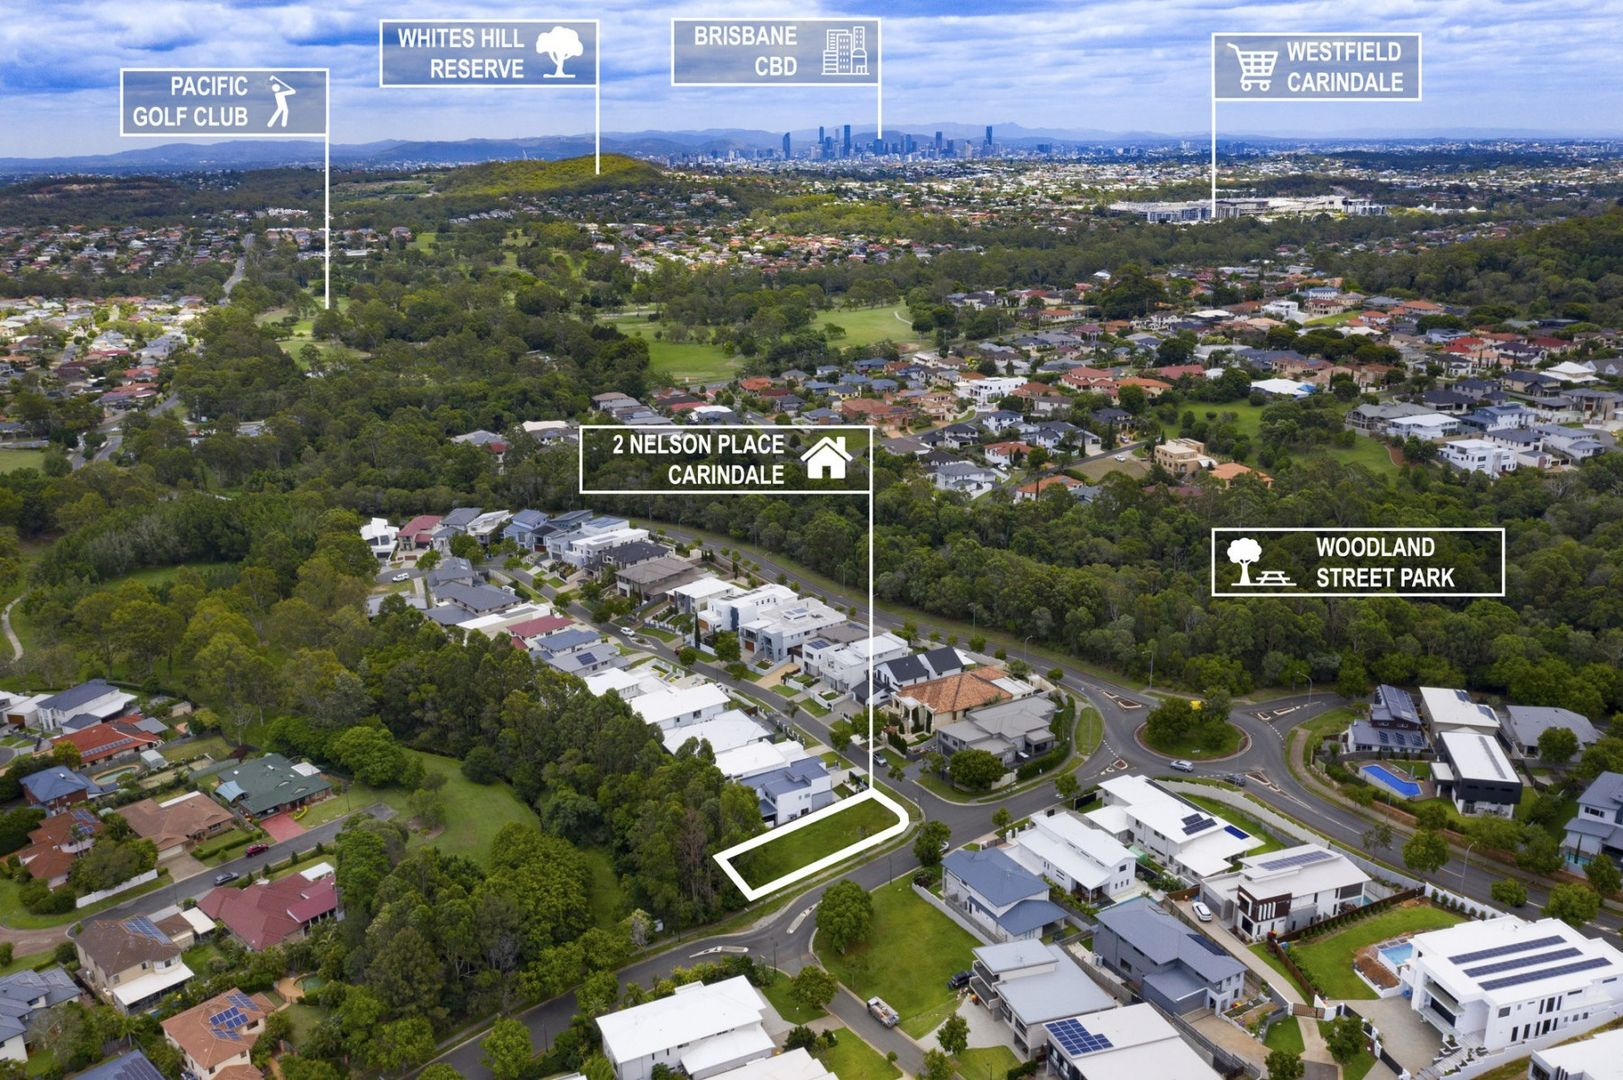 2 Nelson Place, Carindale QLD 4152 | Domain